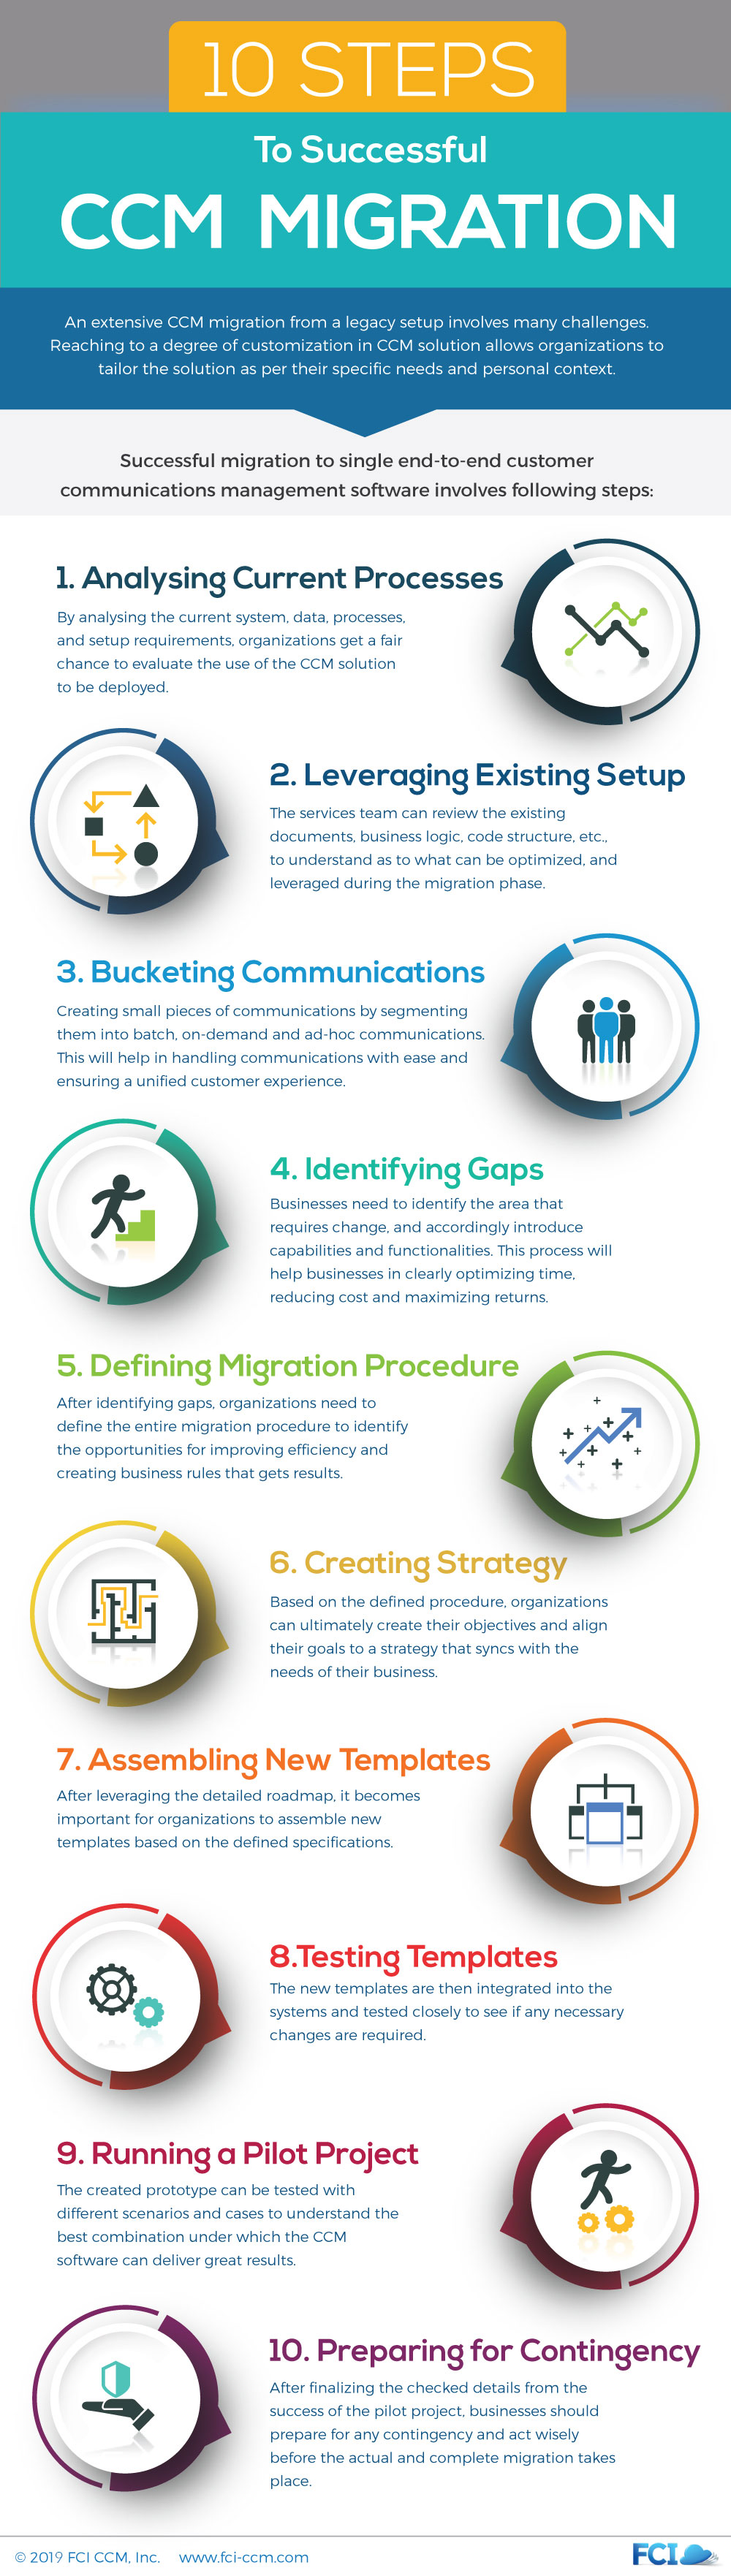 10-Steps-to-Successful-CCM-Migration